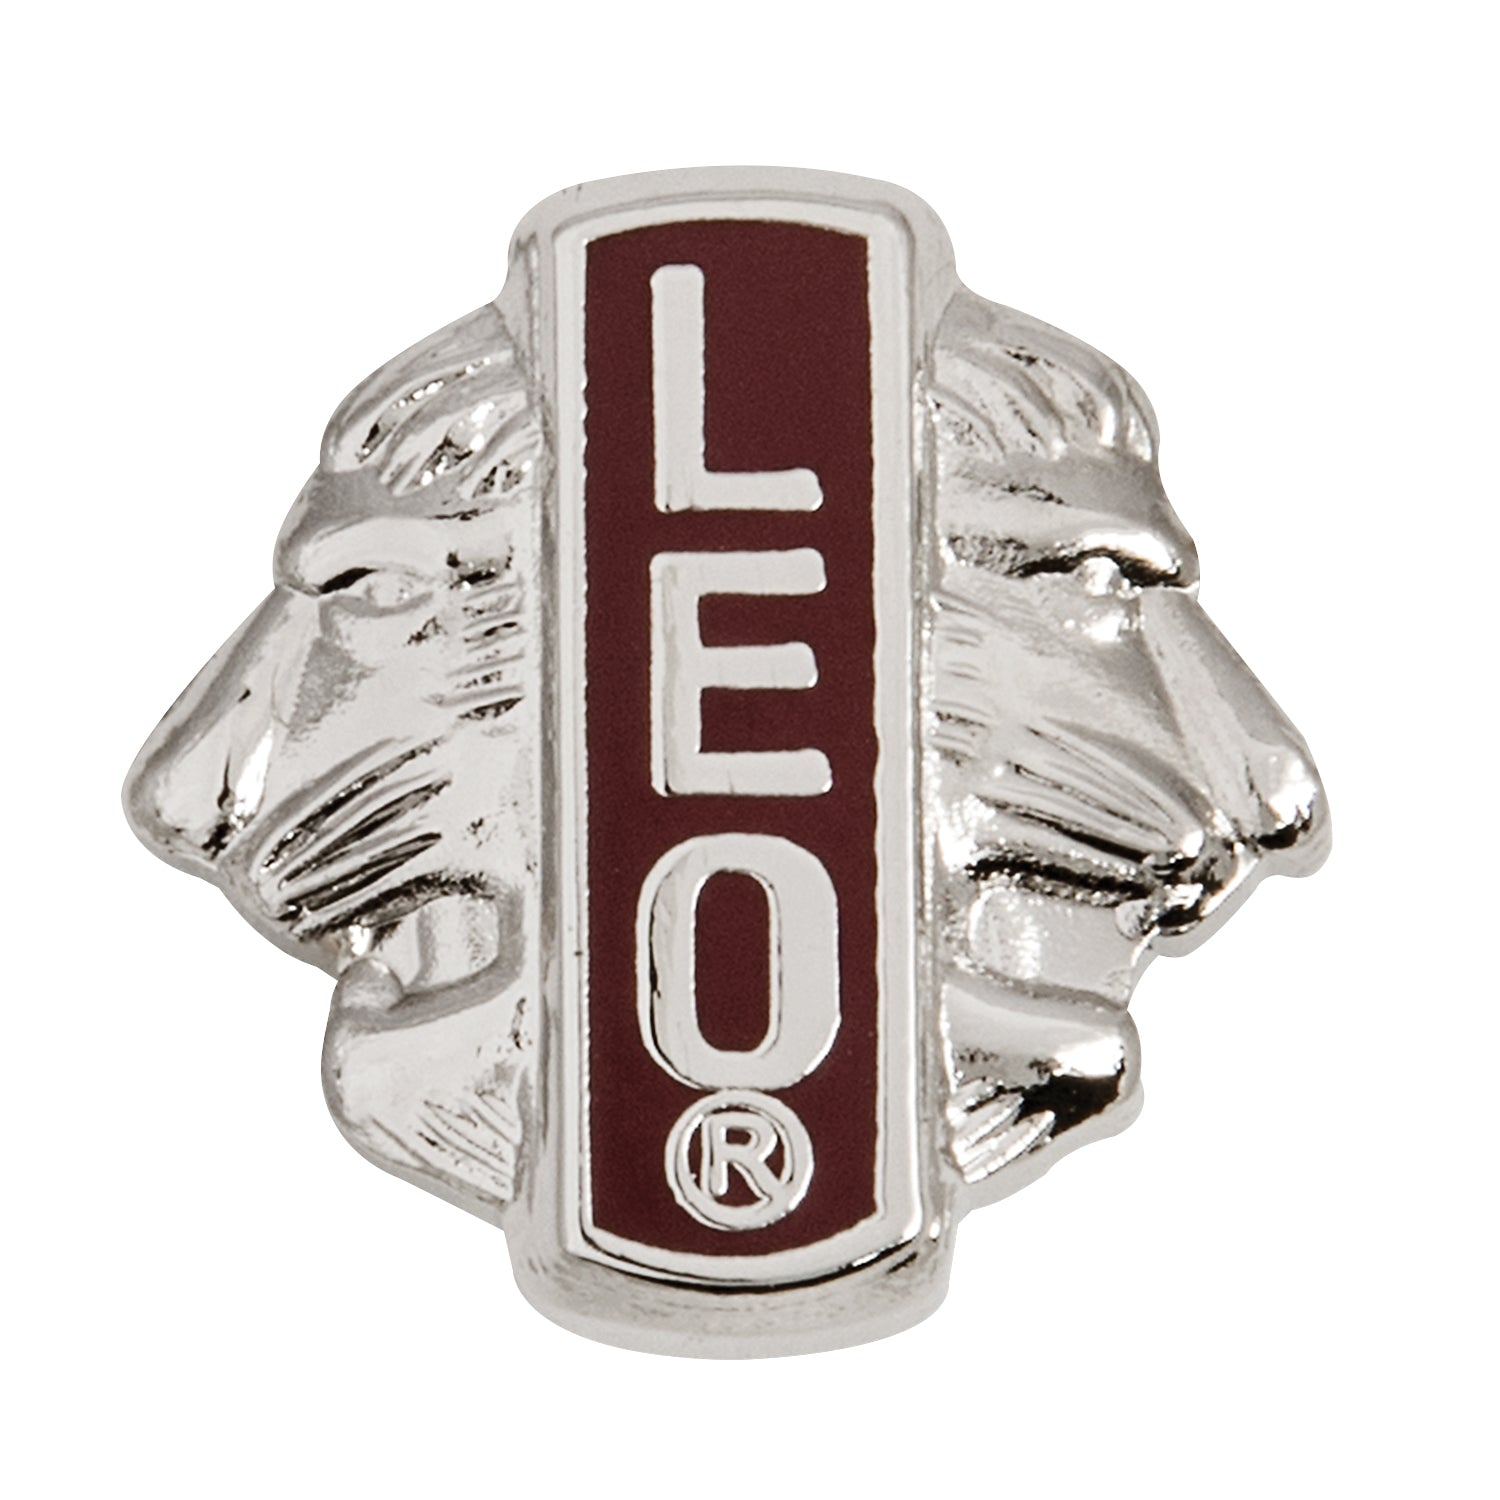 LEO CLUB ALPHA LAPEL TACK